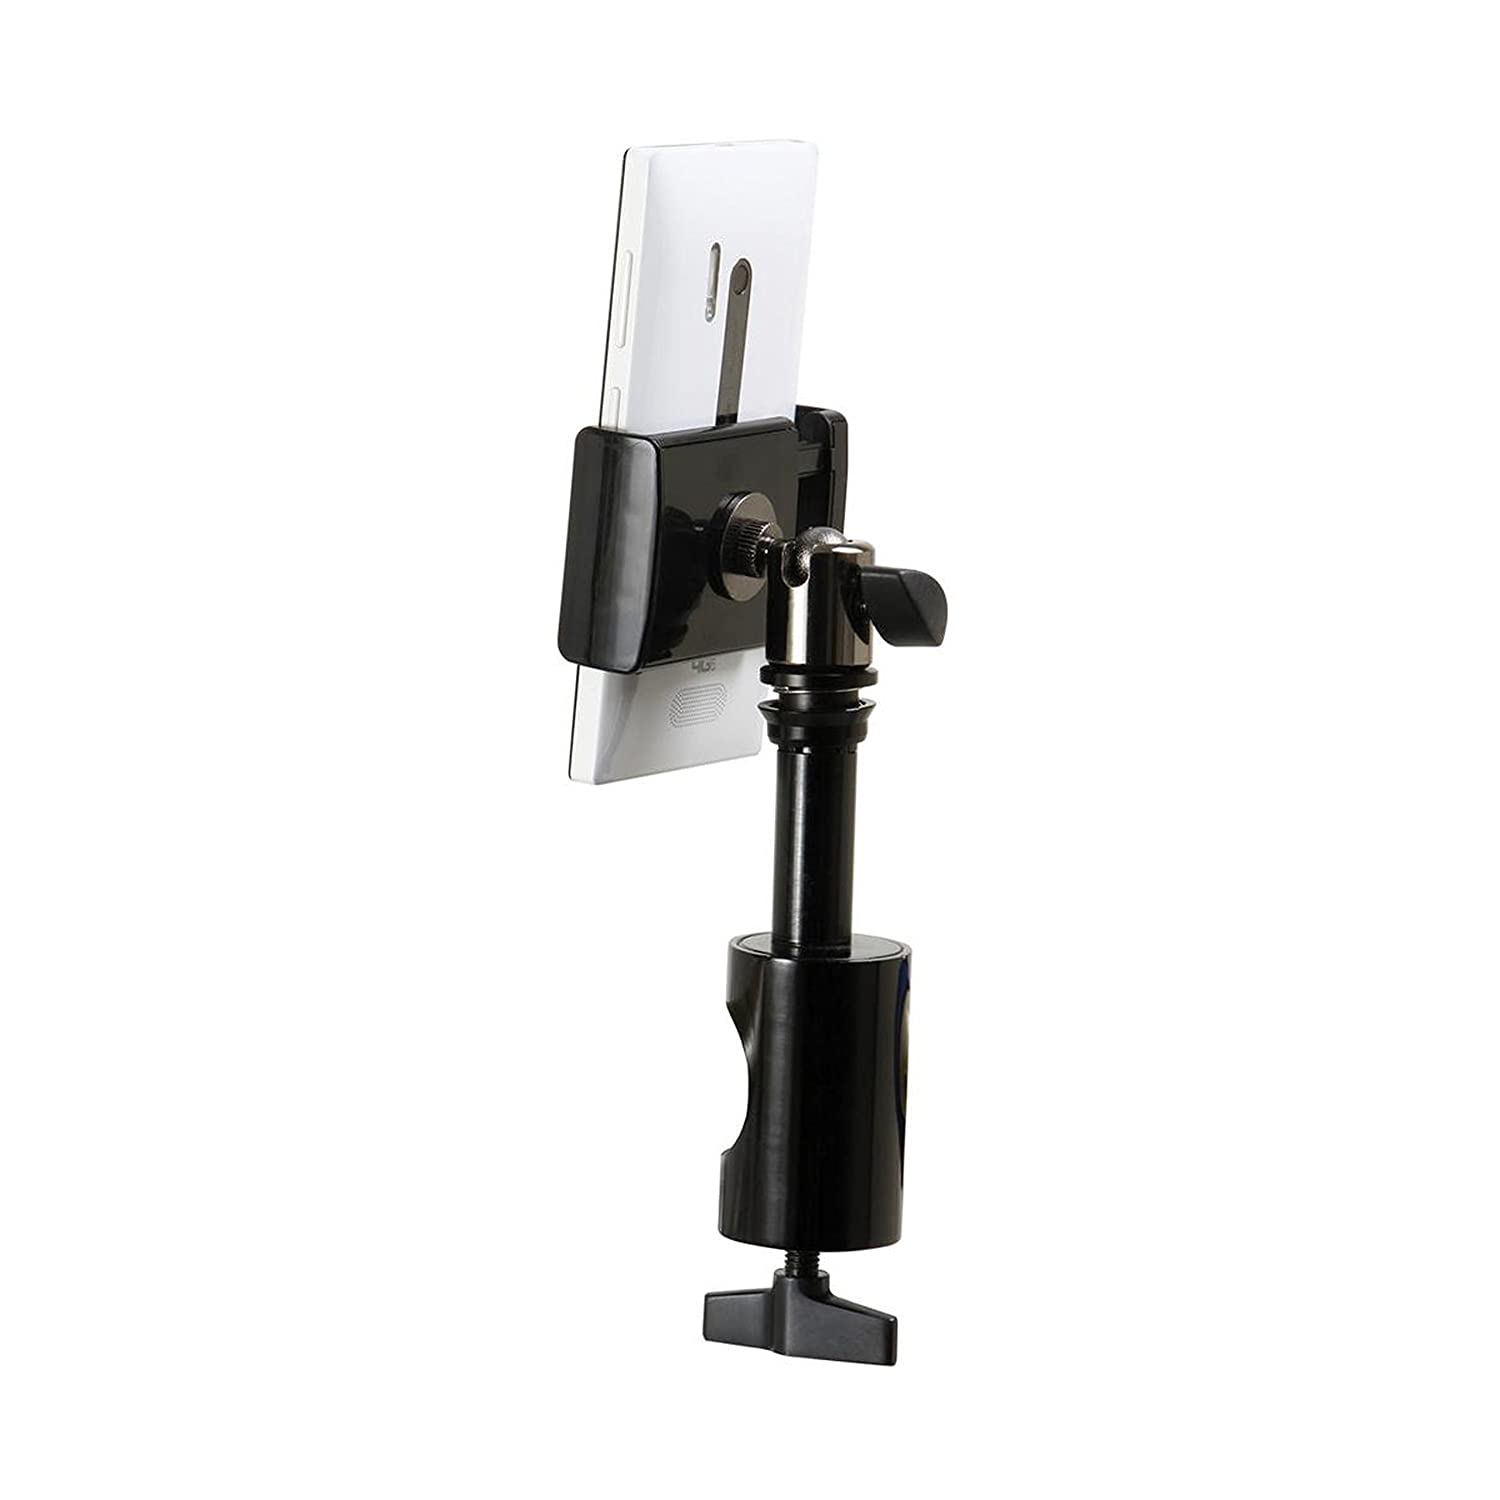 On-Stage Stands TCM1908 Grip-On Universal Device Holder with U-Mount Bullnose Clamp